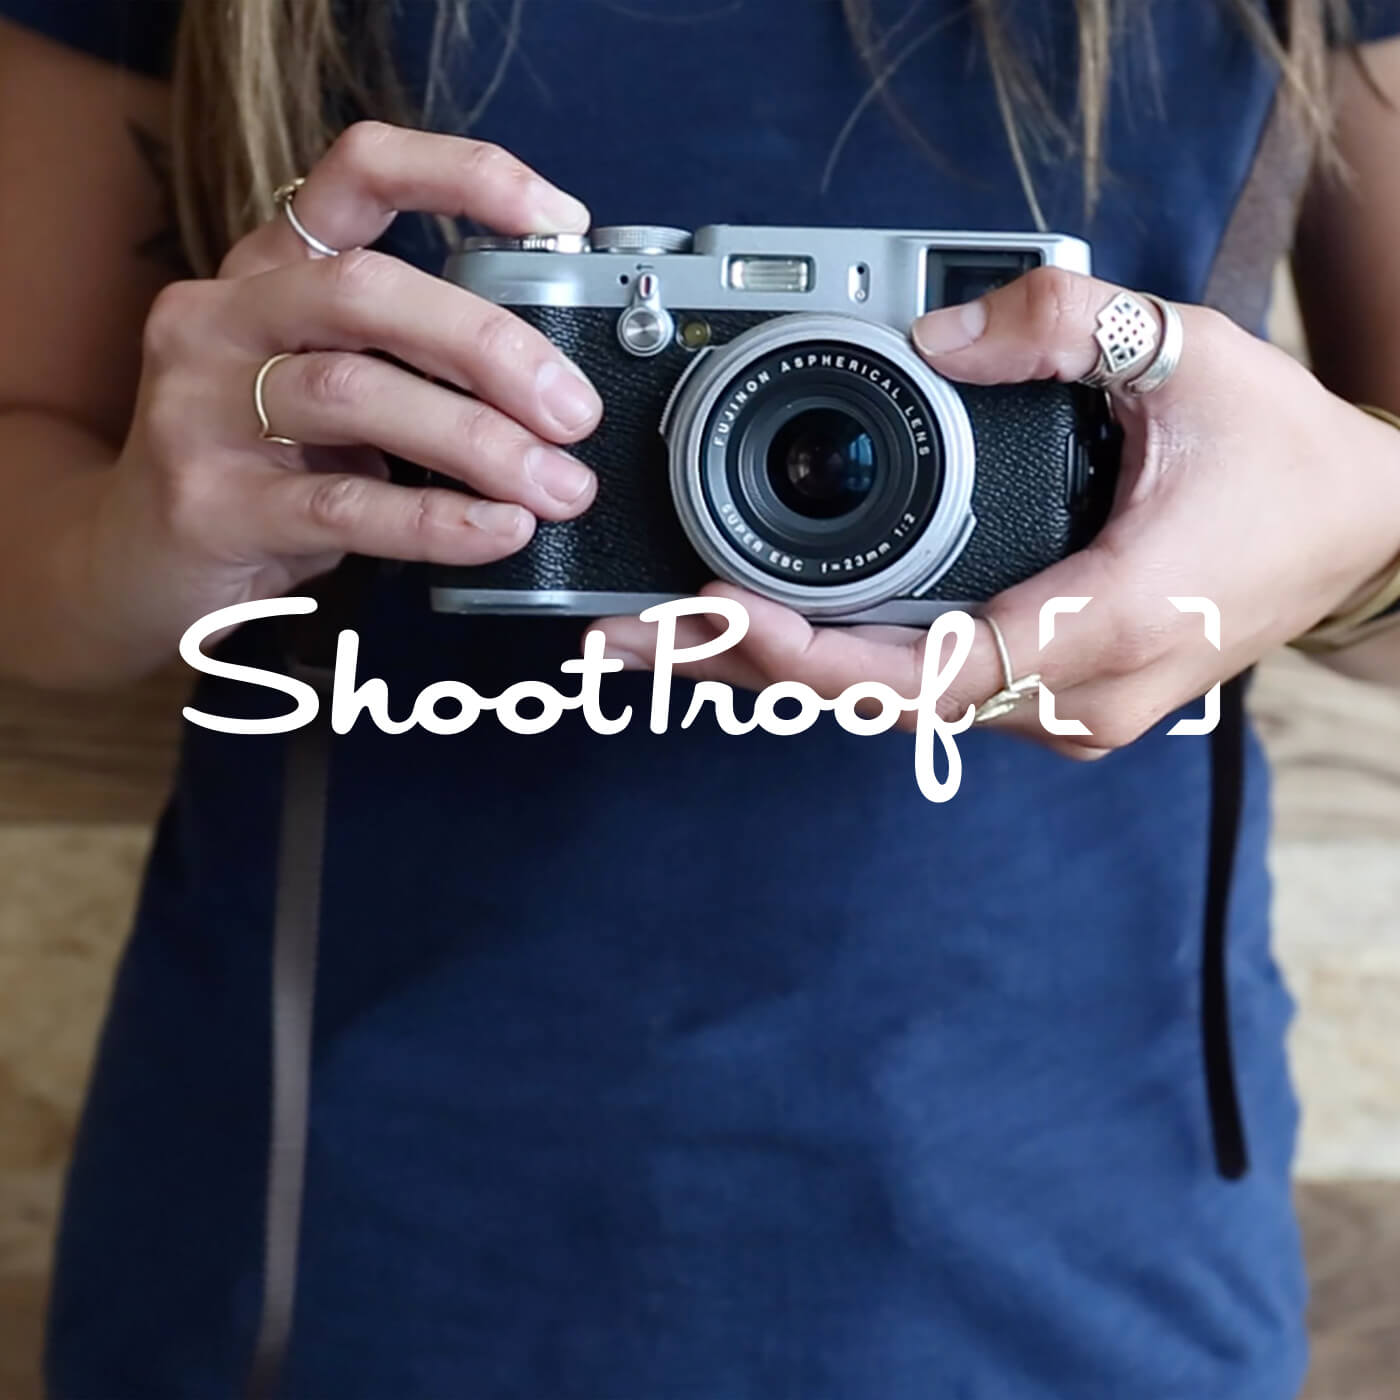 ShootProof - Art direction projects for ShootProof, a startup in Atlanta that provides client photo galleries and sales tools to photographers, including the company's first brand guidelines, video and print advertising, and marketing website designs.Art Direction, DesignView Project →